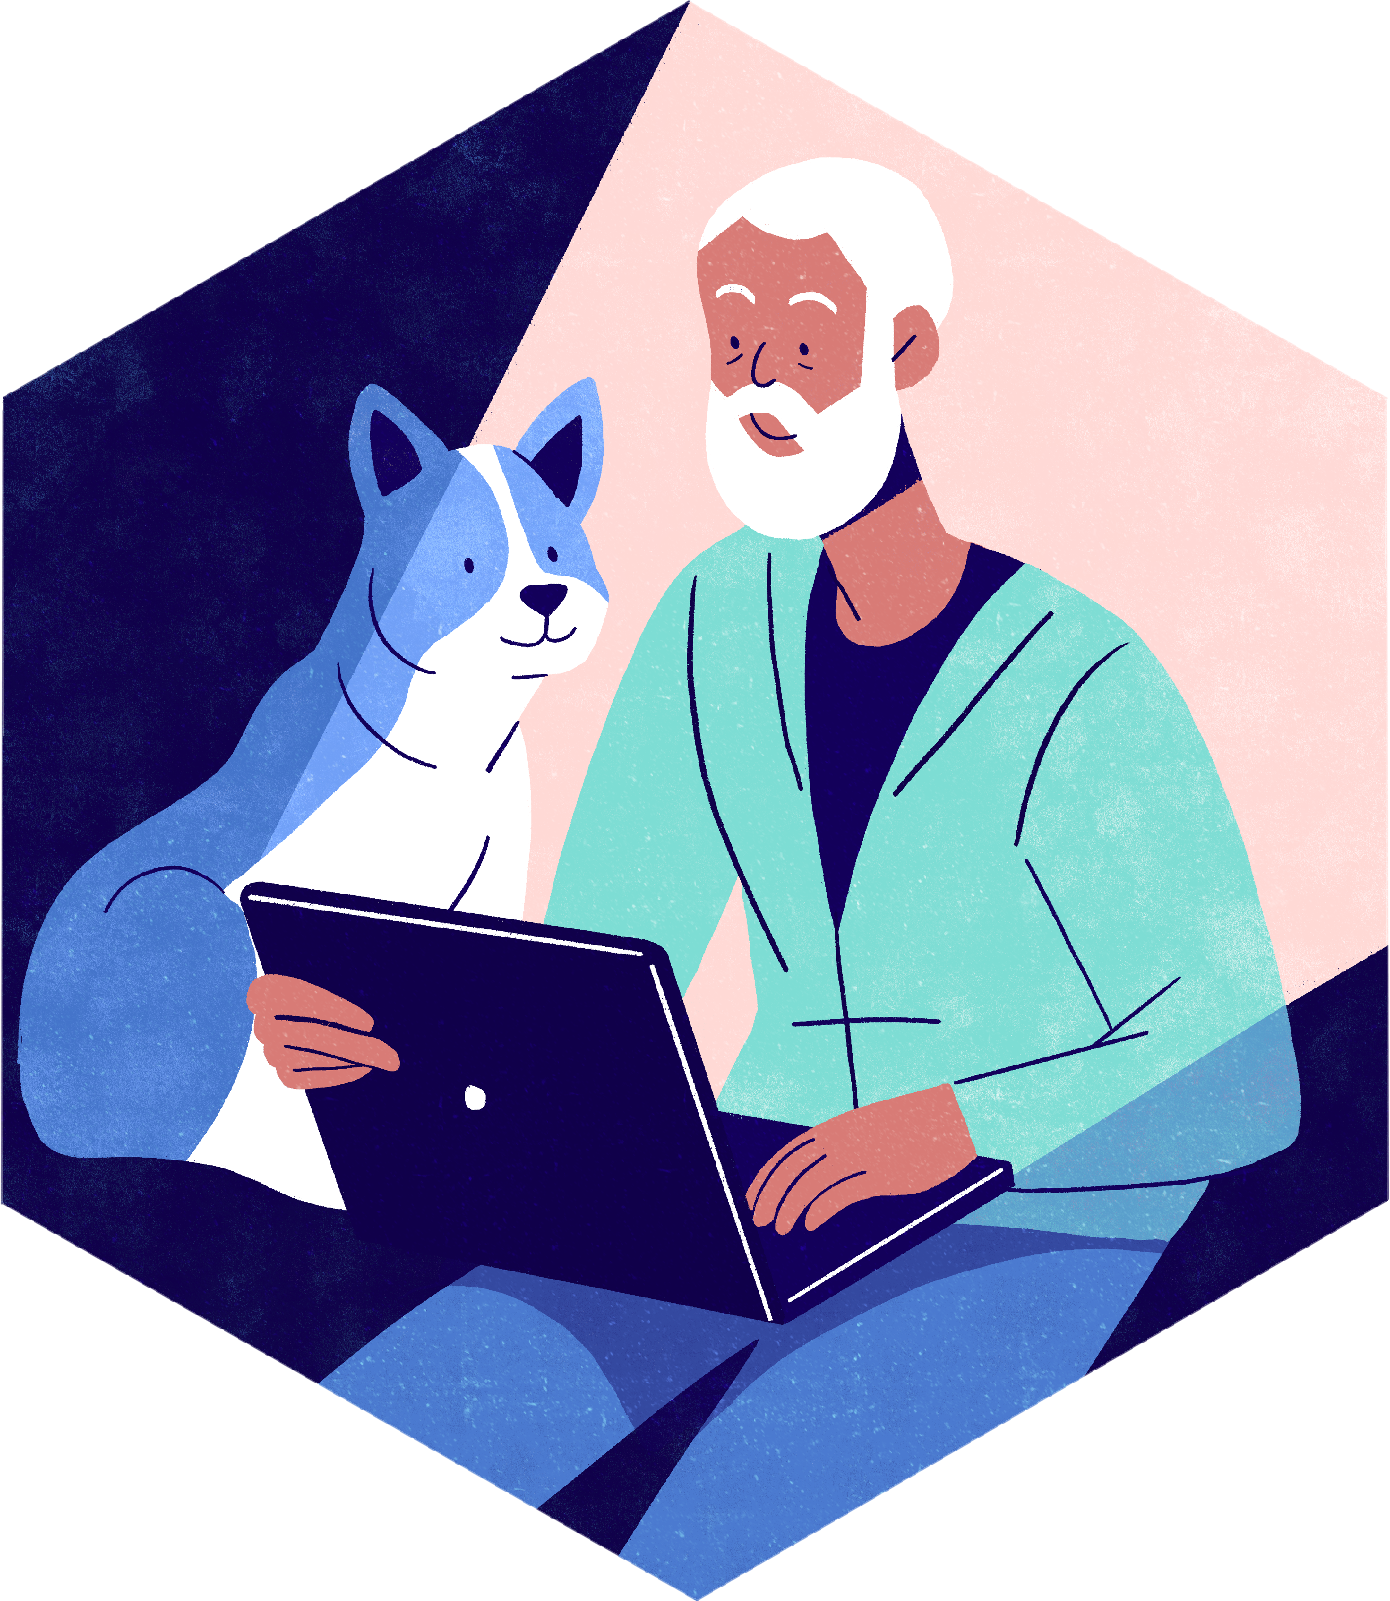 Person working at their laptop with a dog. Lydia Hill Illustration. All rights reserved.